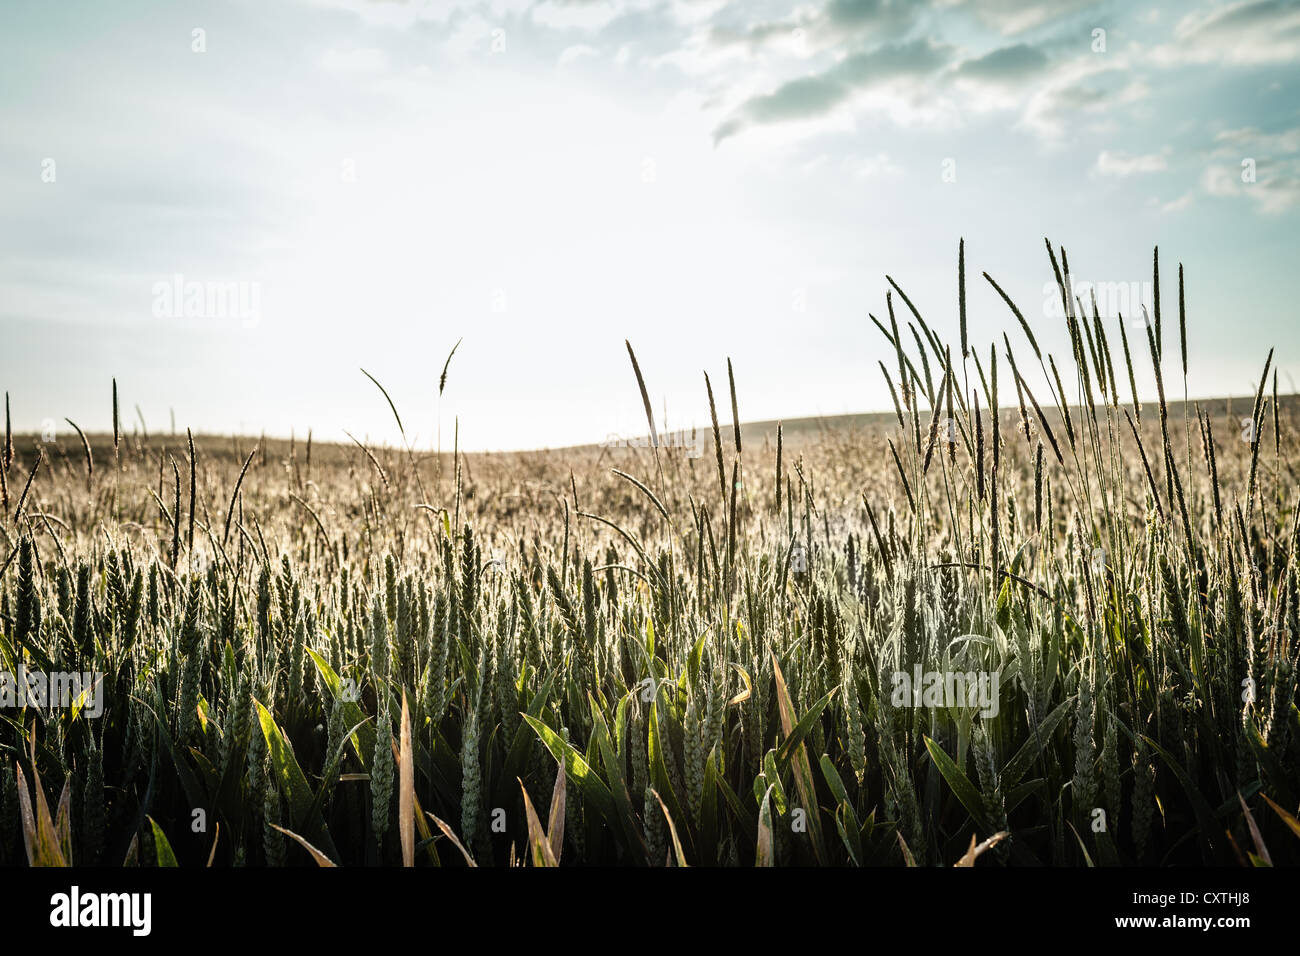 Field of tall grass under blue sky - Stock Image